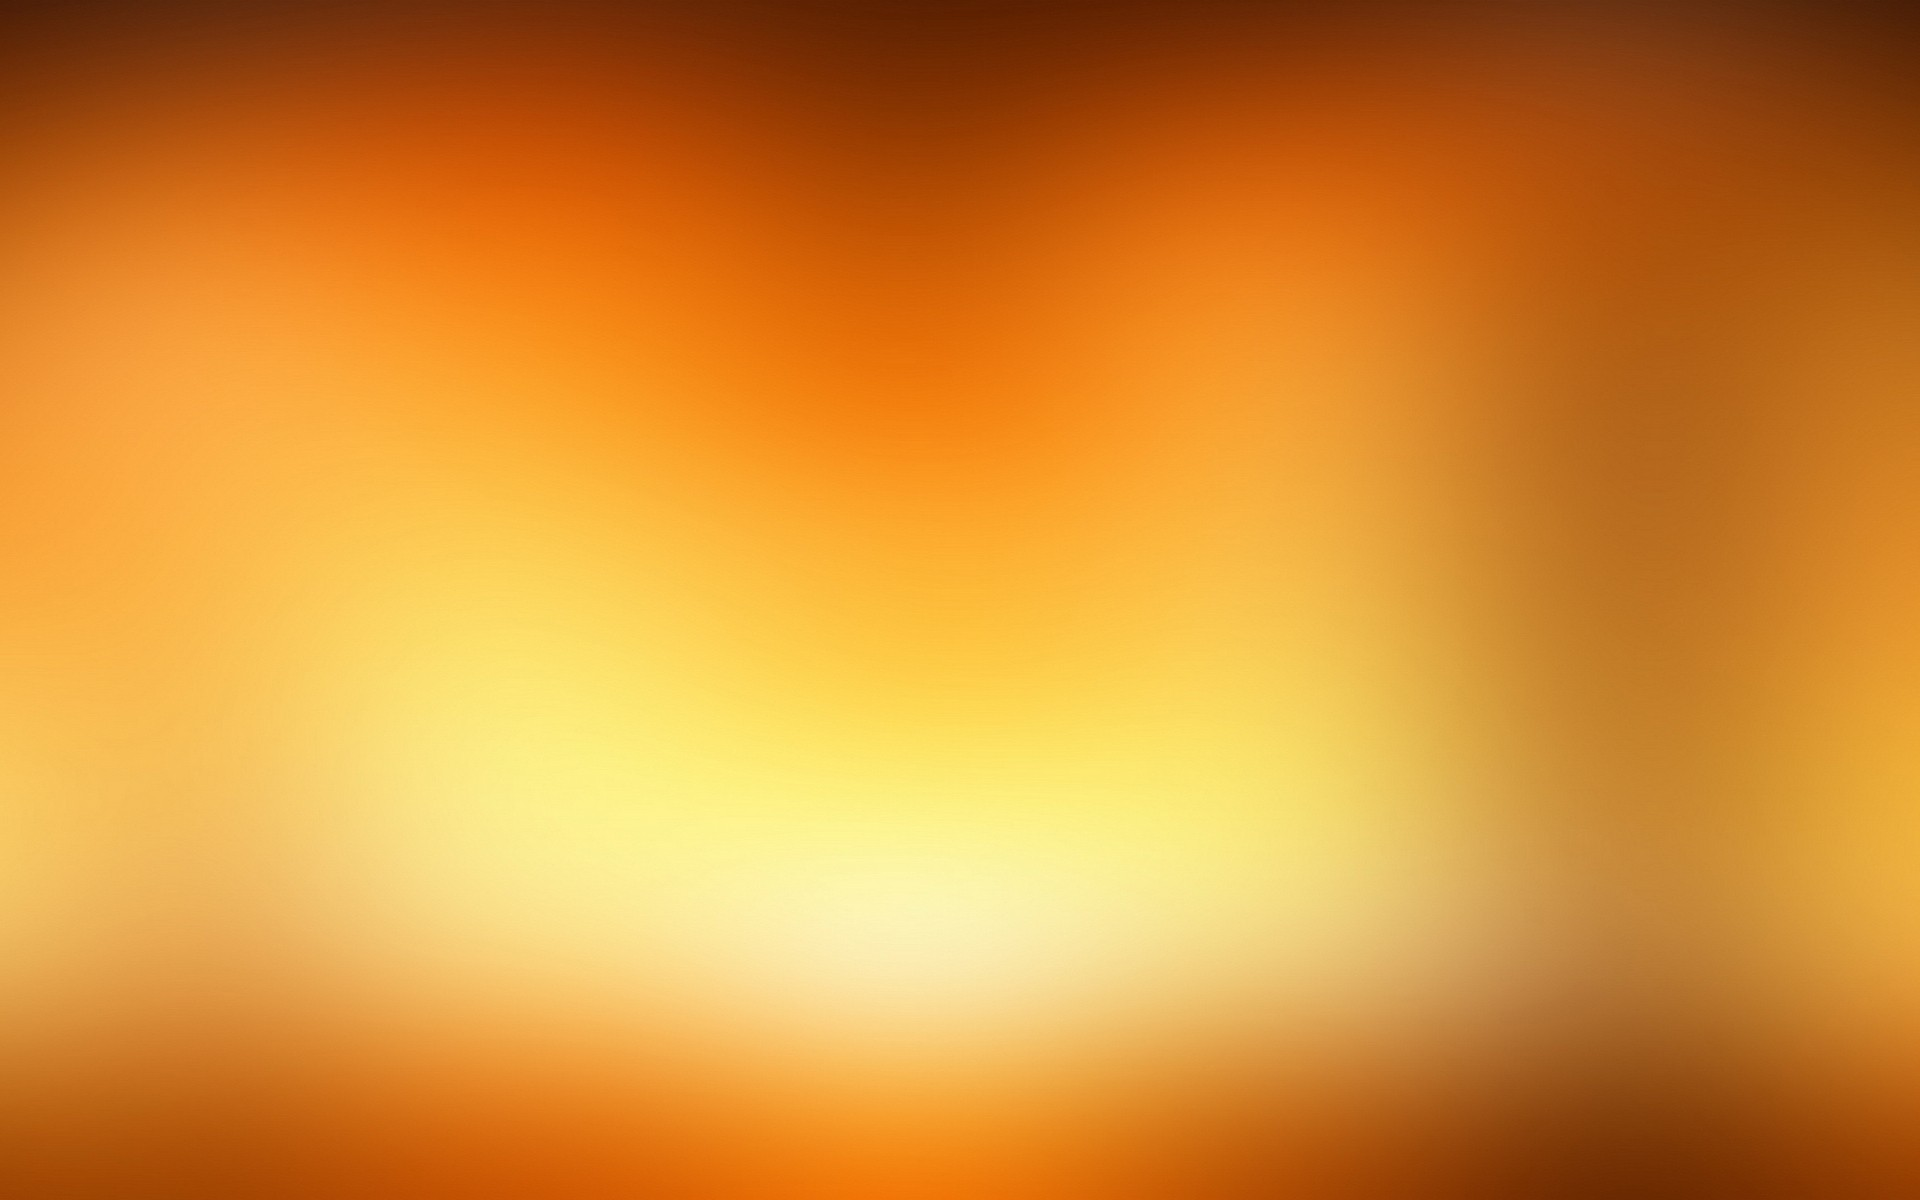 Free Orange Abstract Wallpaper 27678 1920x1200 px ...